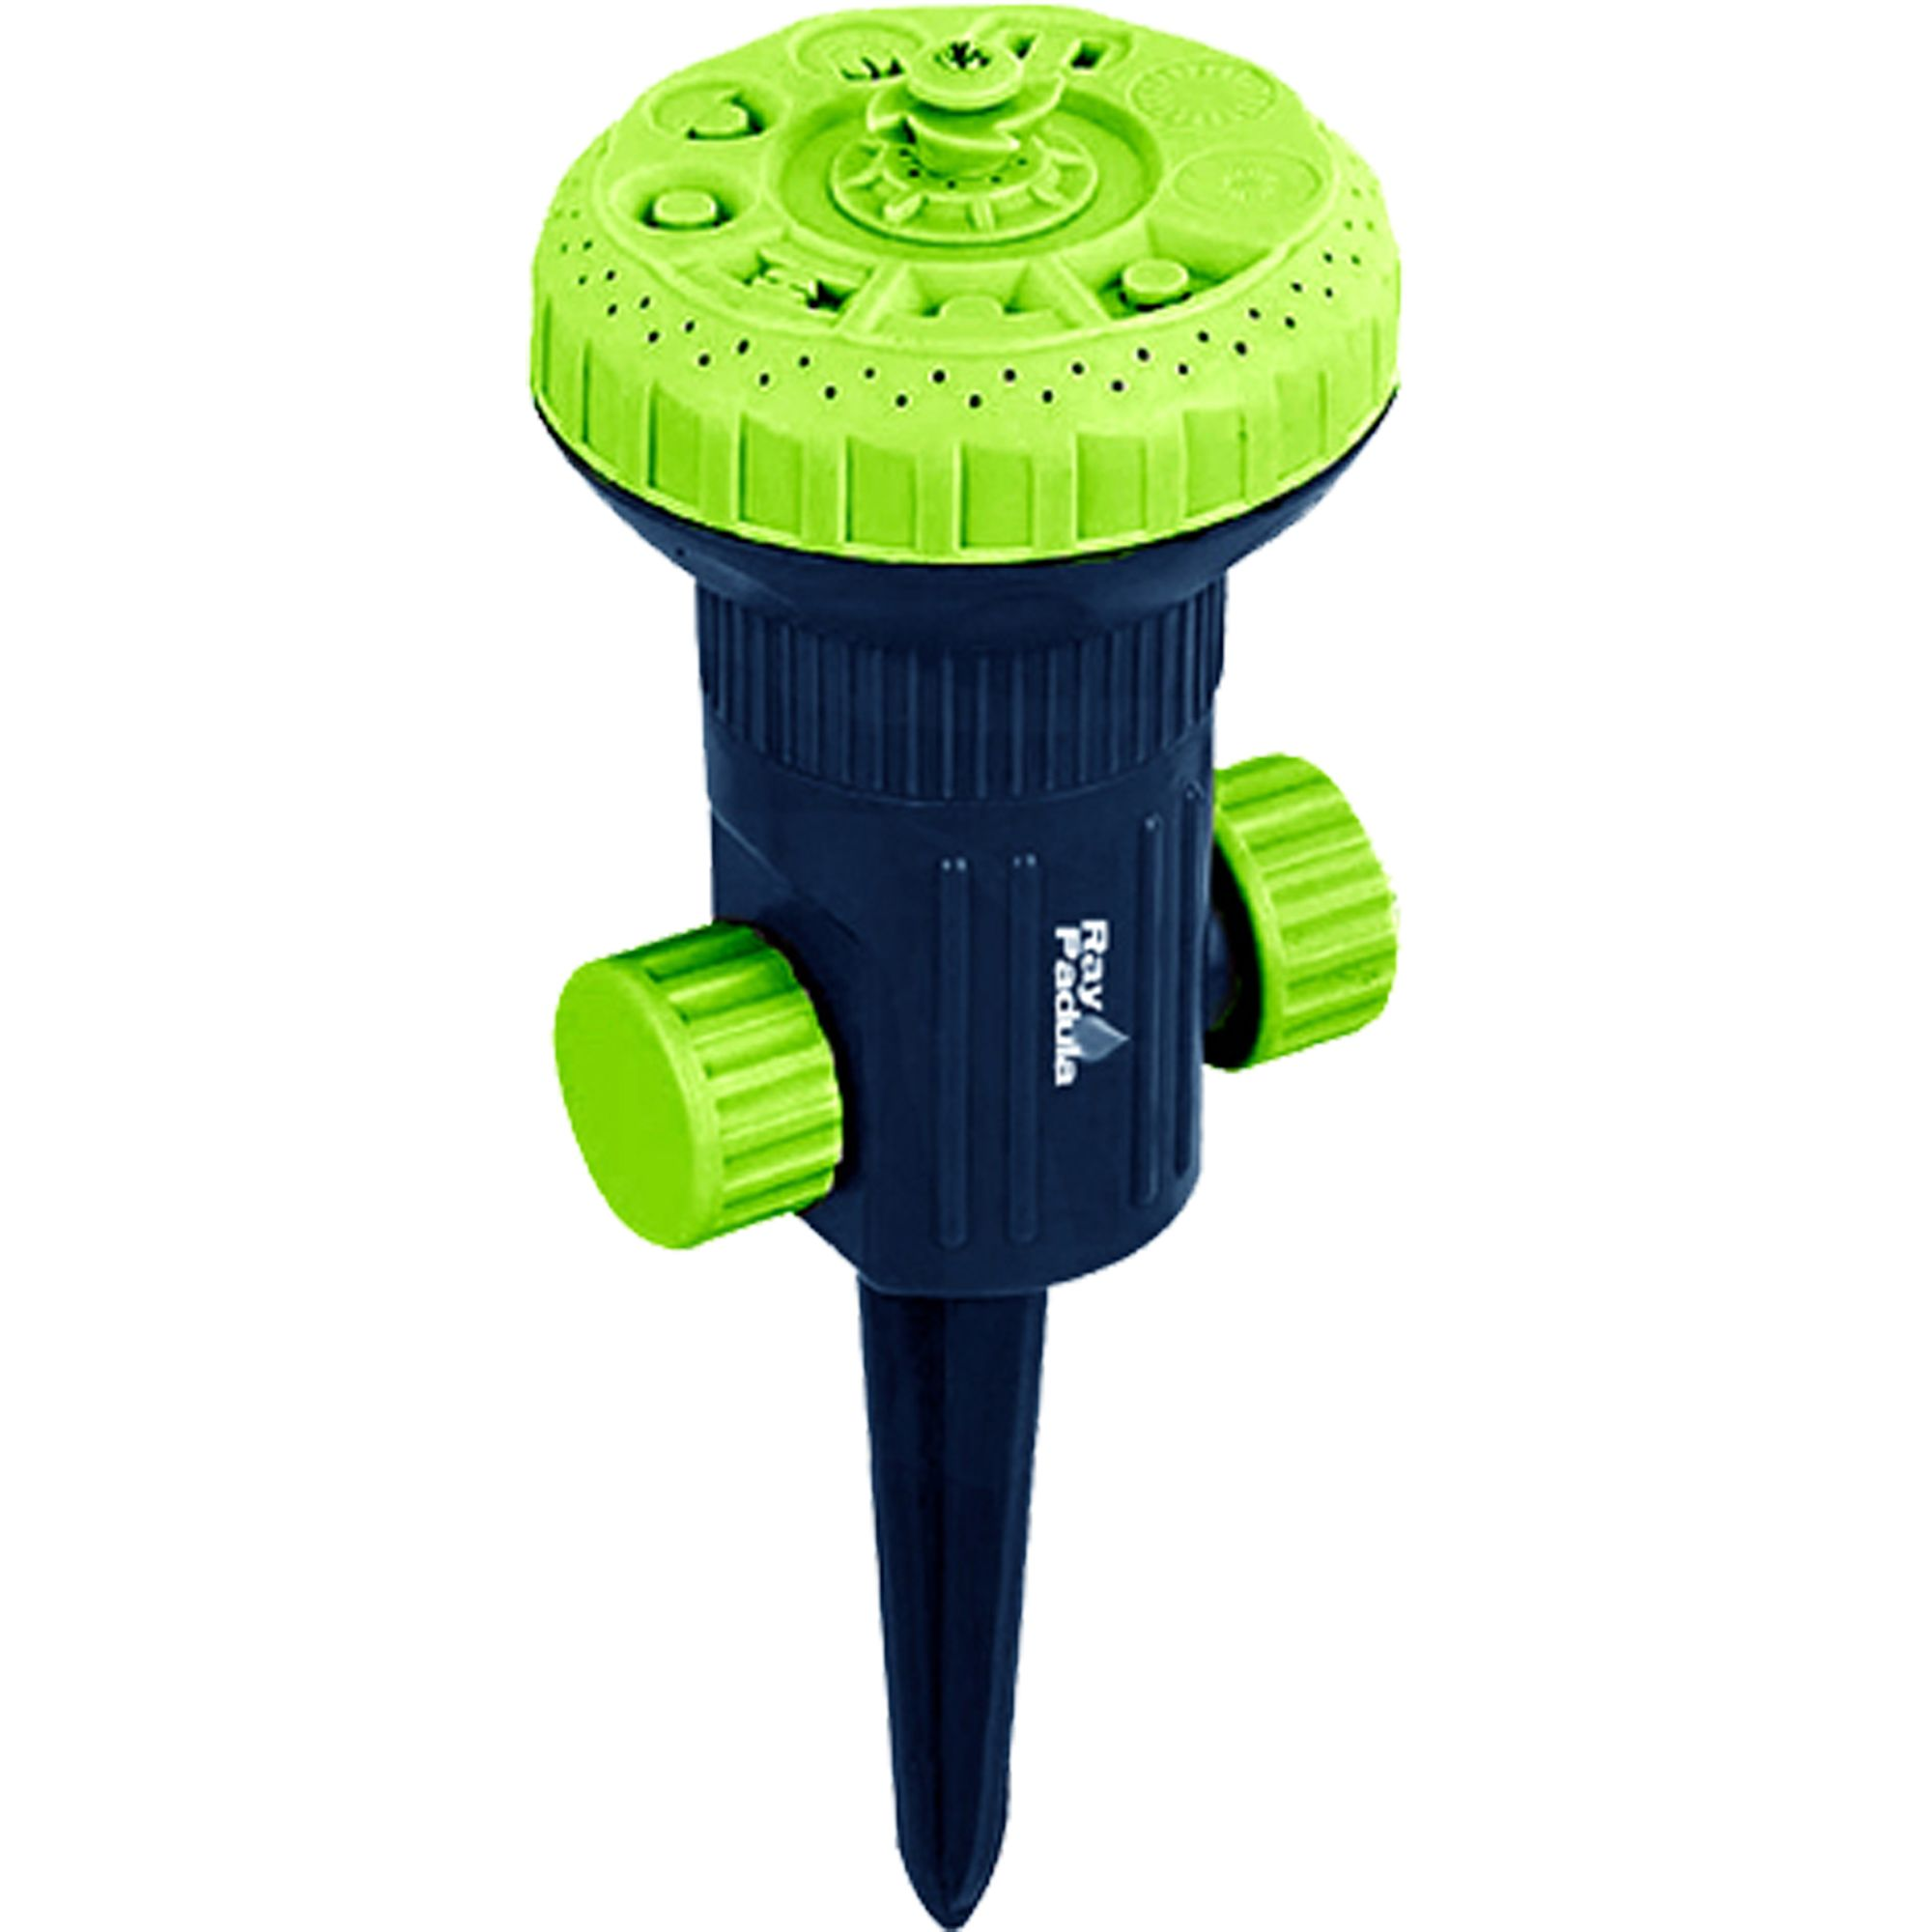 Choose It! 9-Pattern Turret Sprinkler